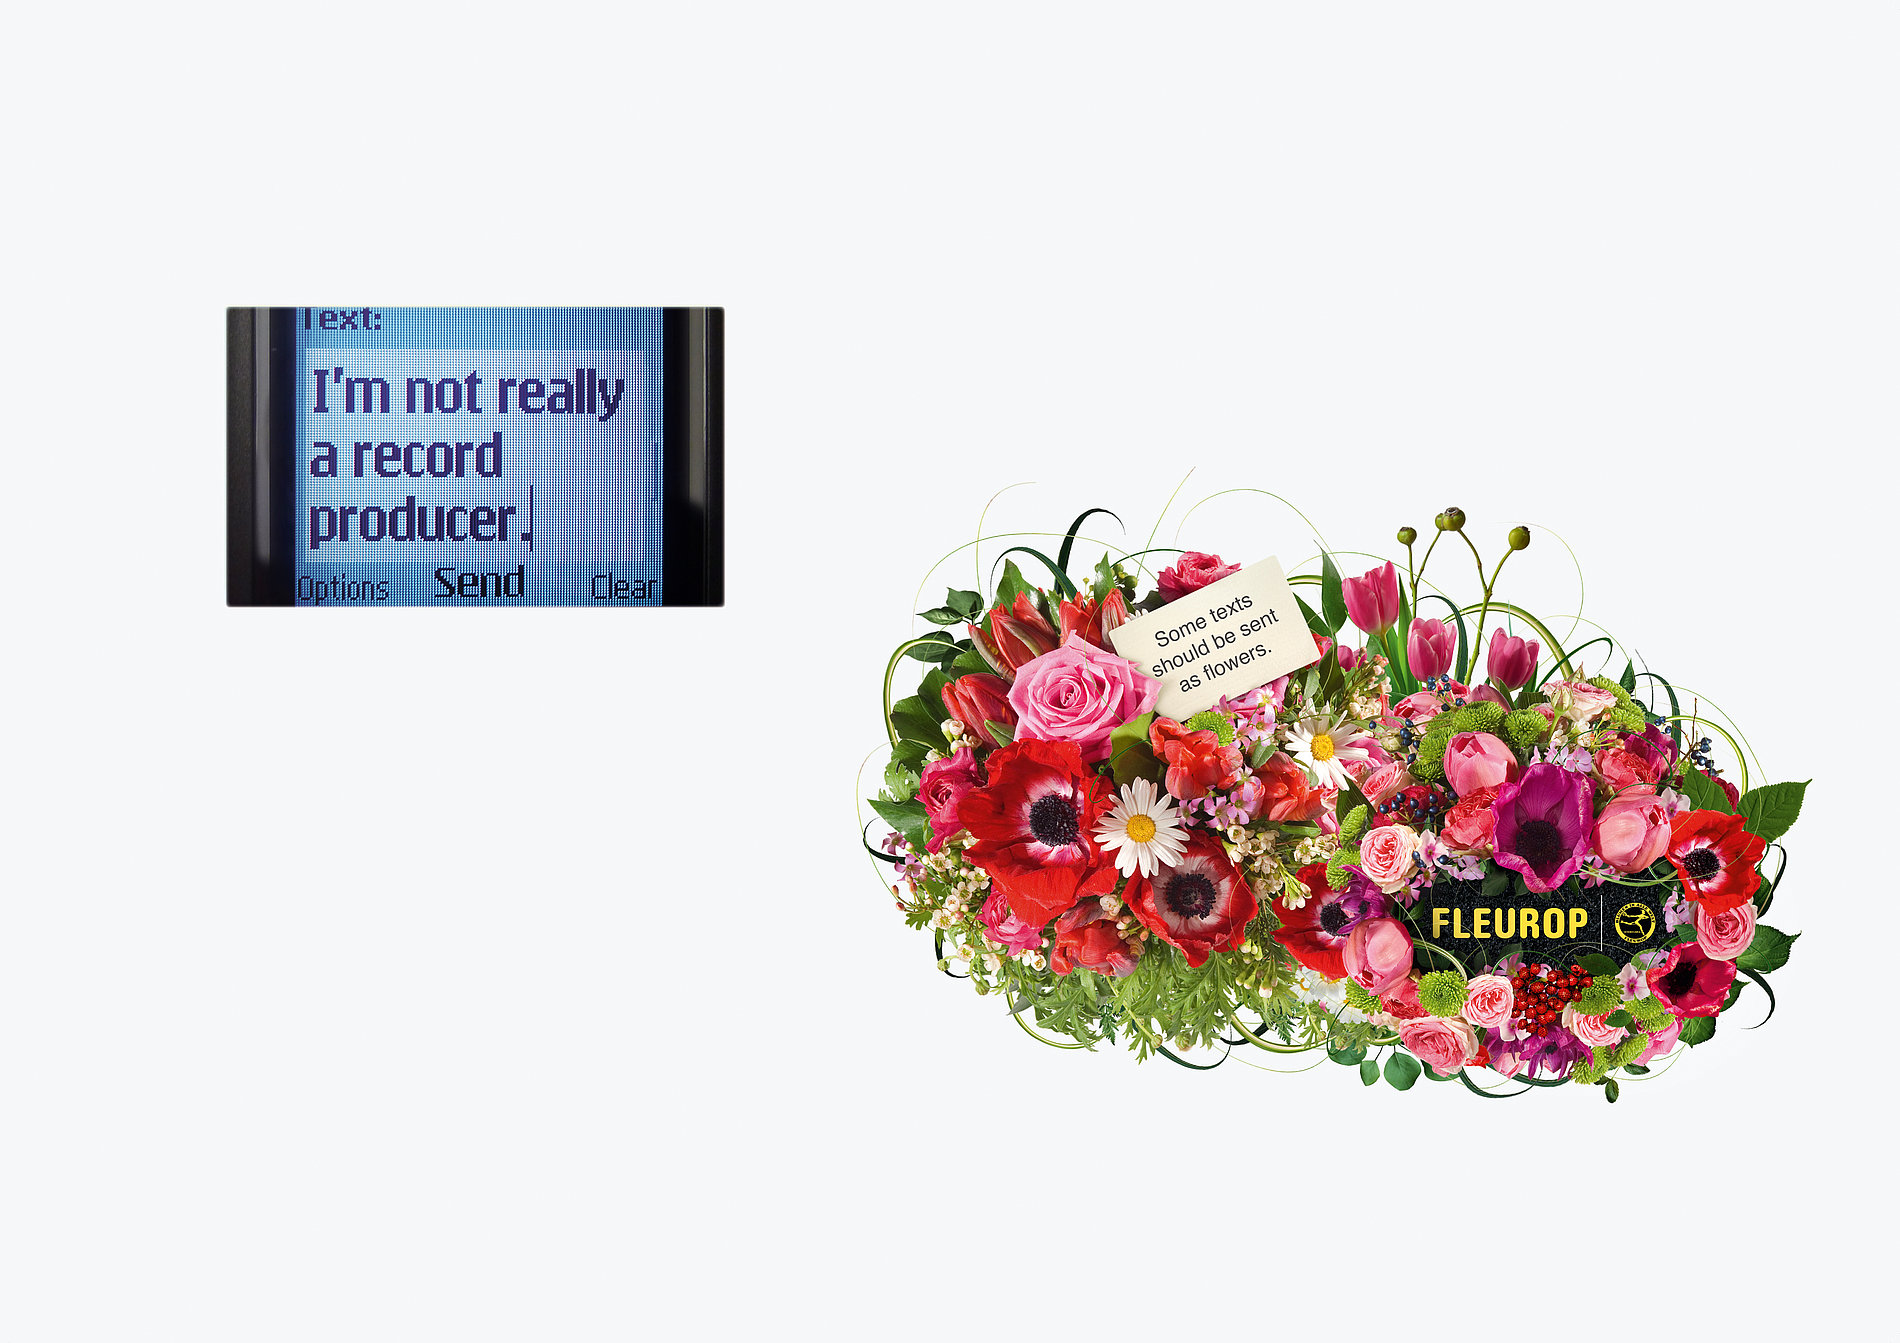 Text Campaign | Red Dot Design Award